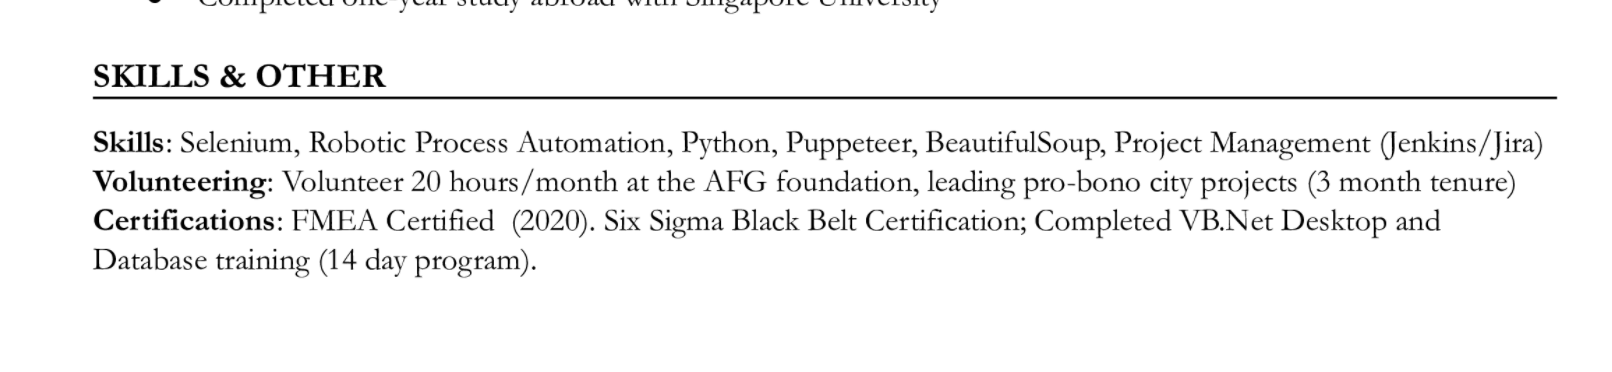 """Skills, volunteering activities, and certifications are combined into a """"Skills & Other"""" section in this resume"""